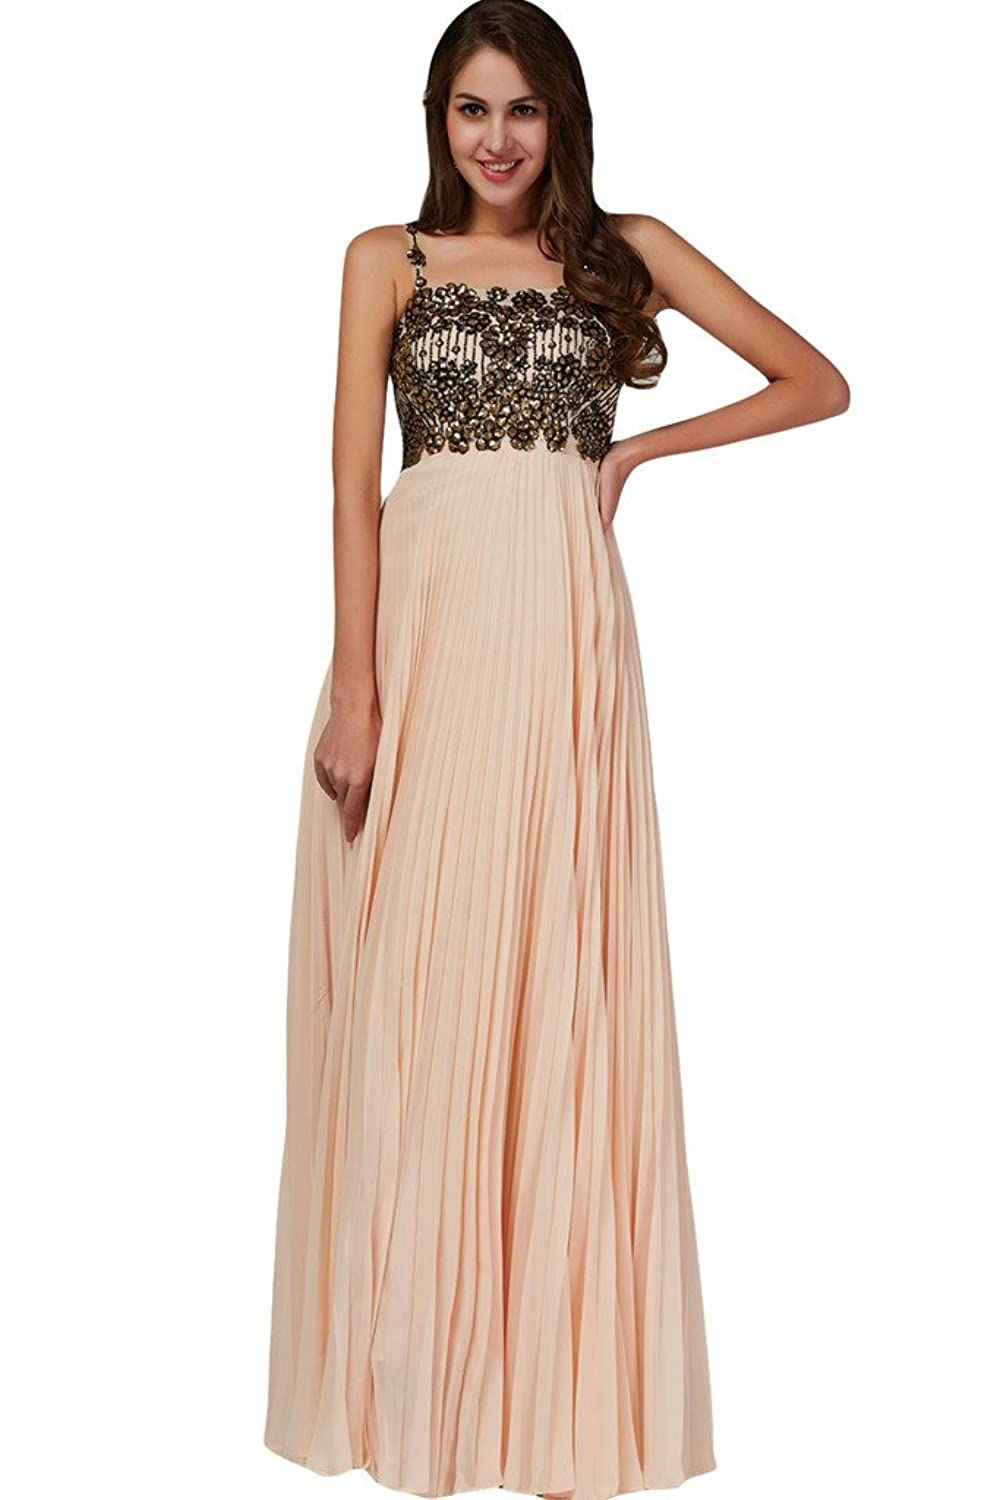 Audrey Bride Pretty Cocktail Party Dresses for Woman Prom Dresses Evening Gowns